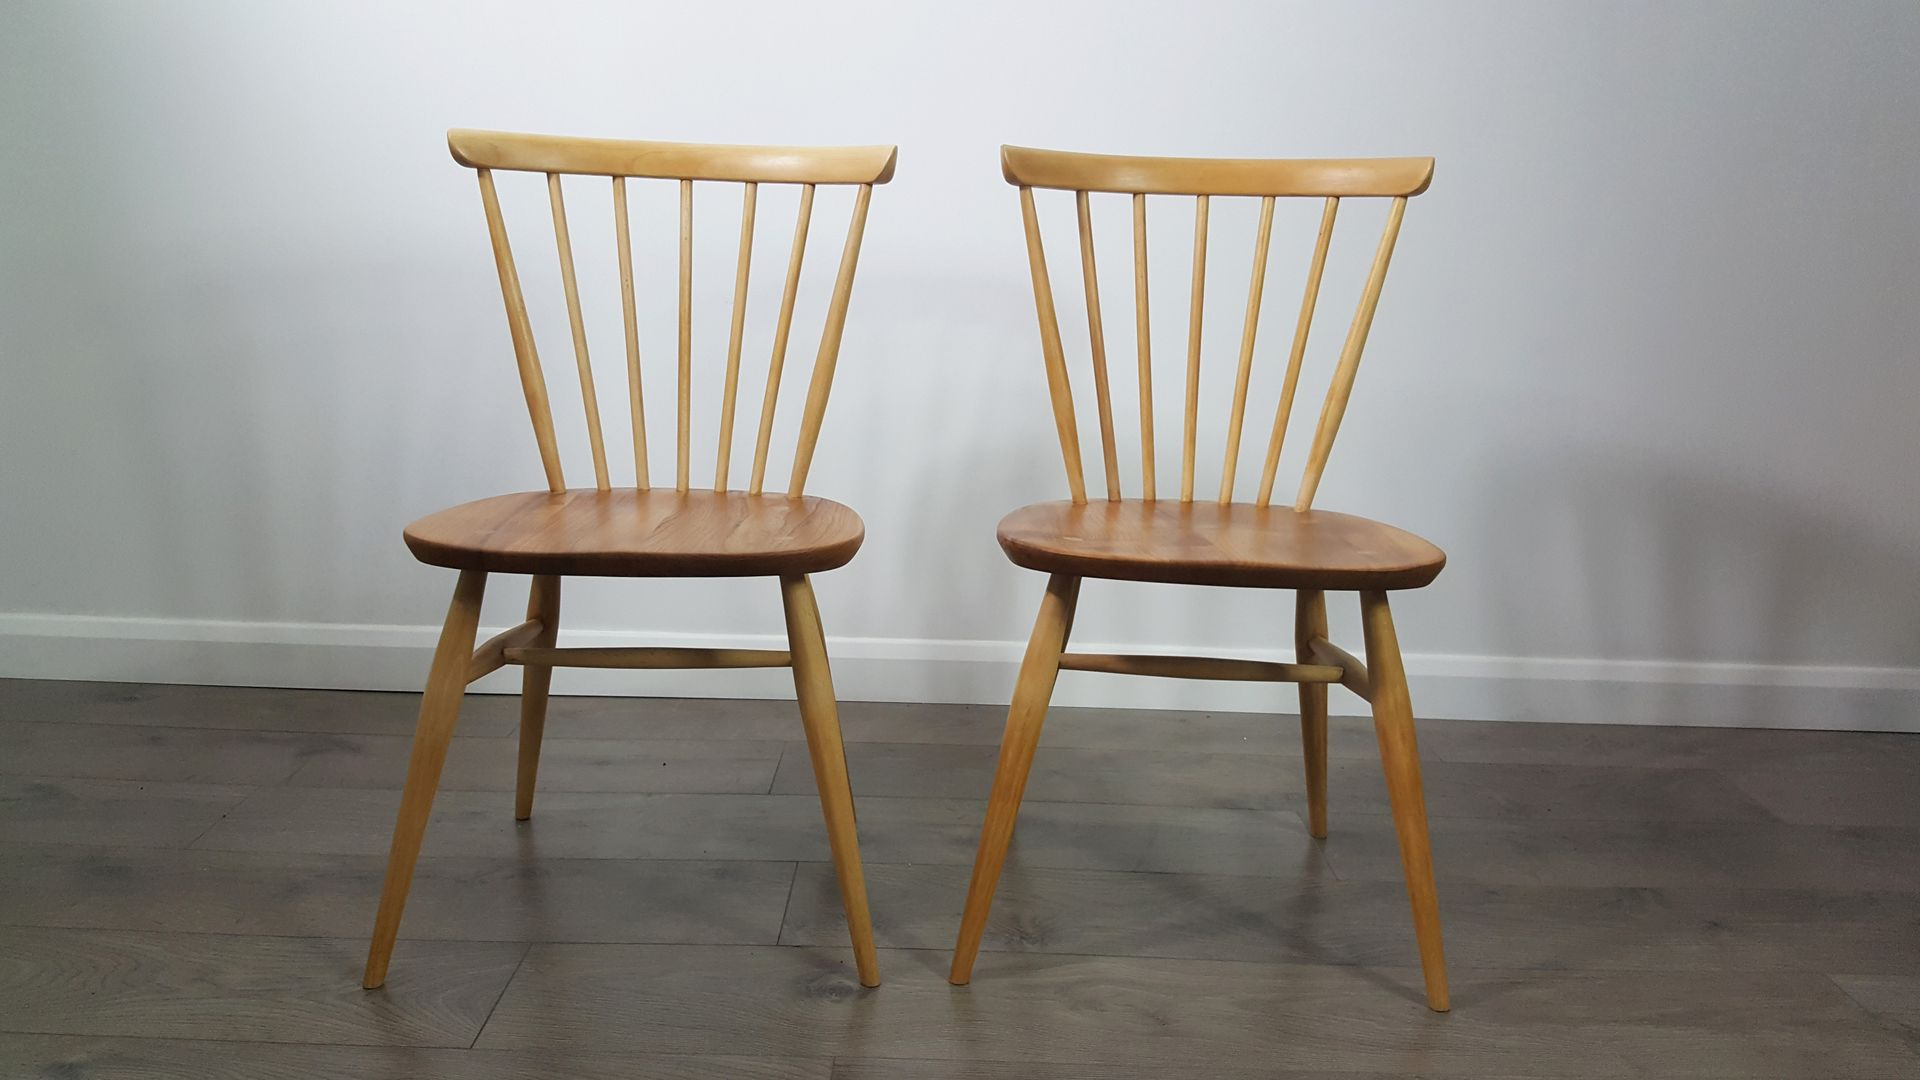 Windsor Bow Top Chairs by Lucian Ercolani for Ercol 1960s Set of